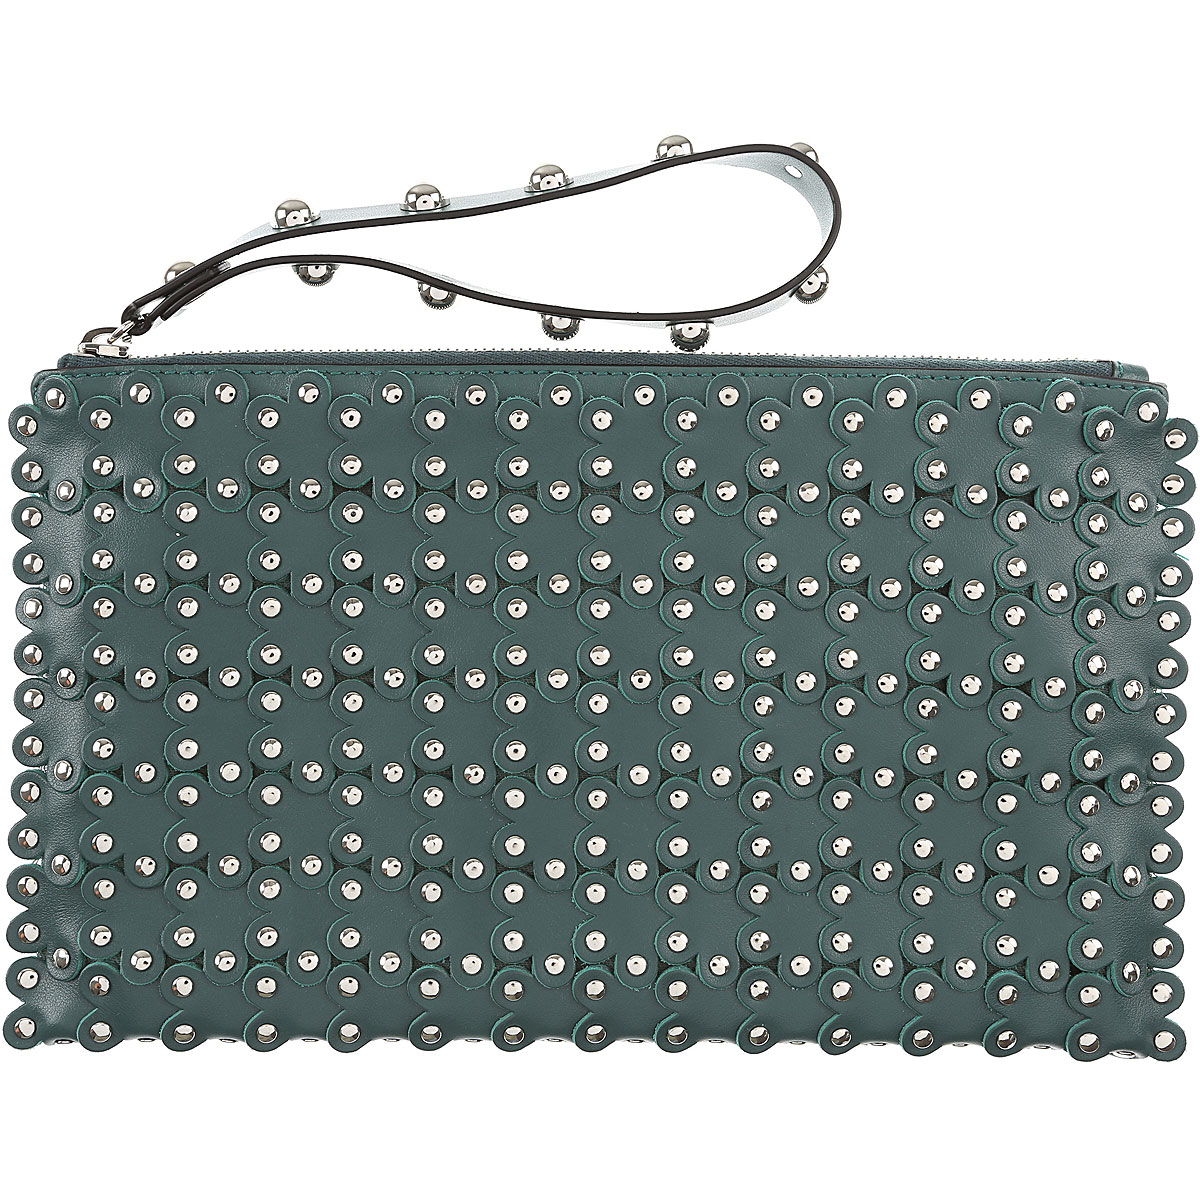 Valentino Clutch Bag On Sale, Agave, Leather, 2017 USA-472194